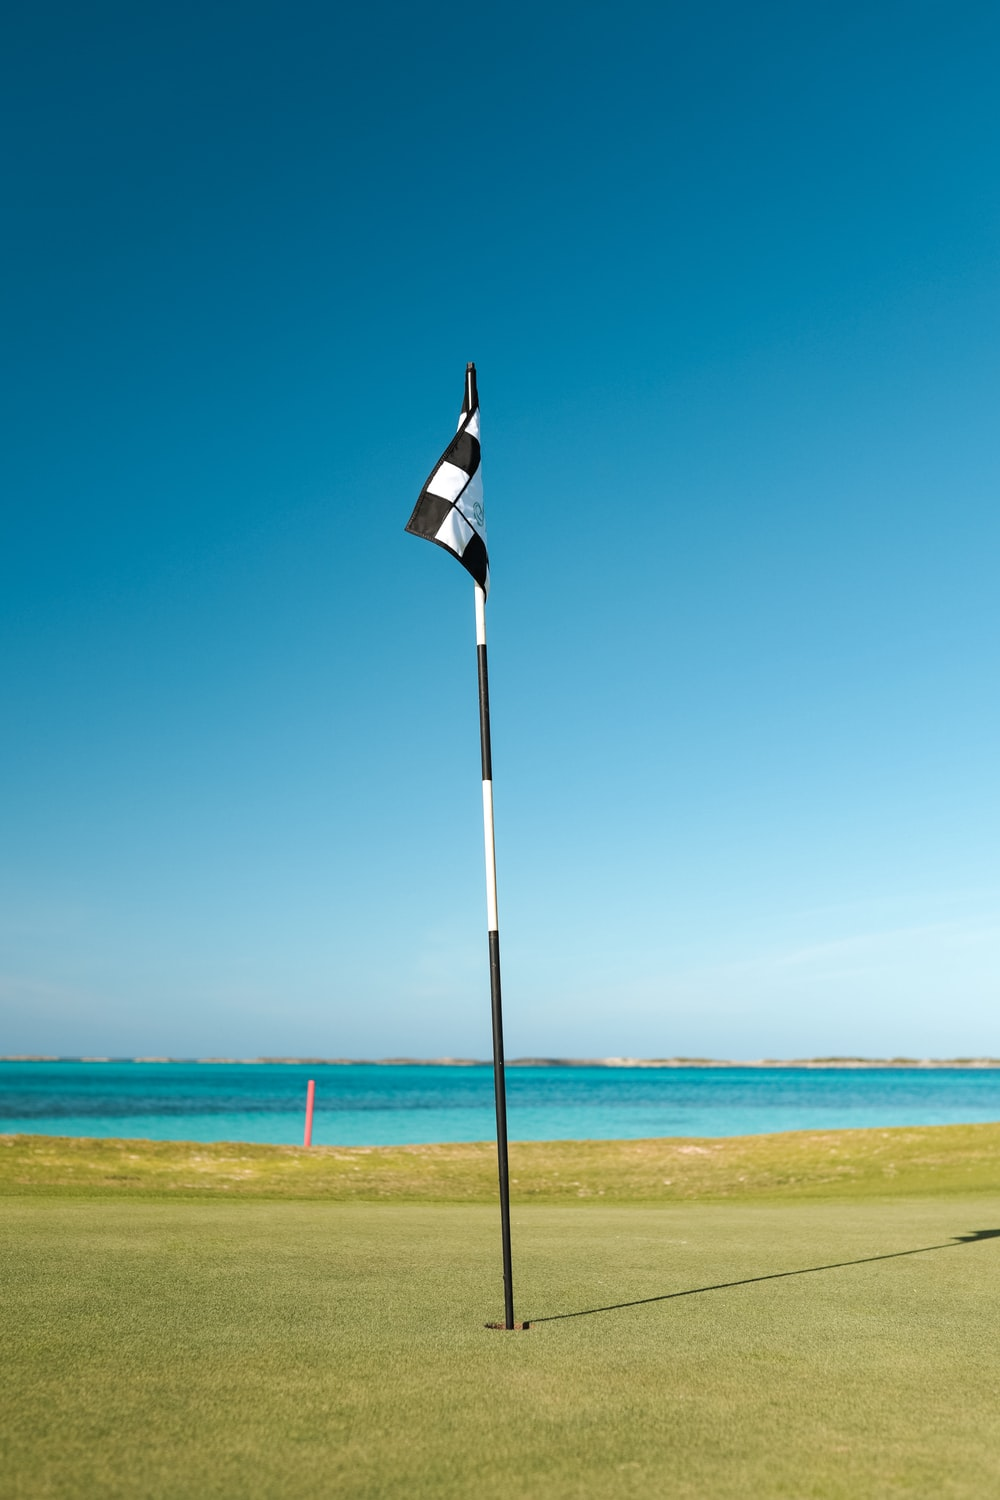 flag of us a on pole by the sea under blue sky during daytime